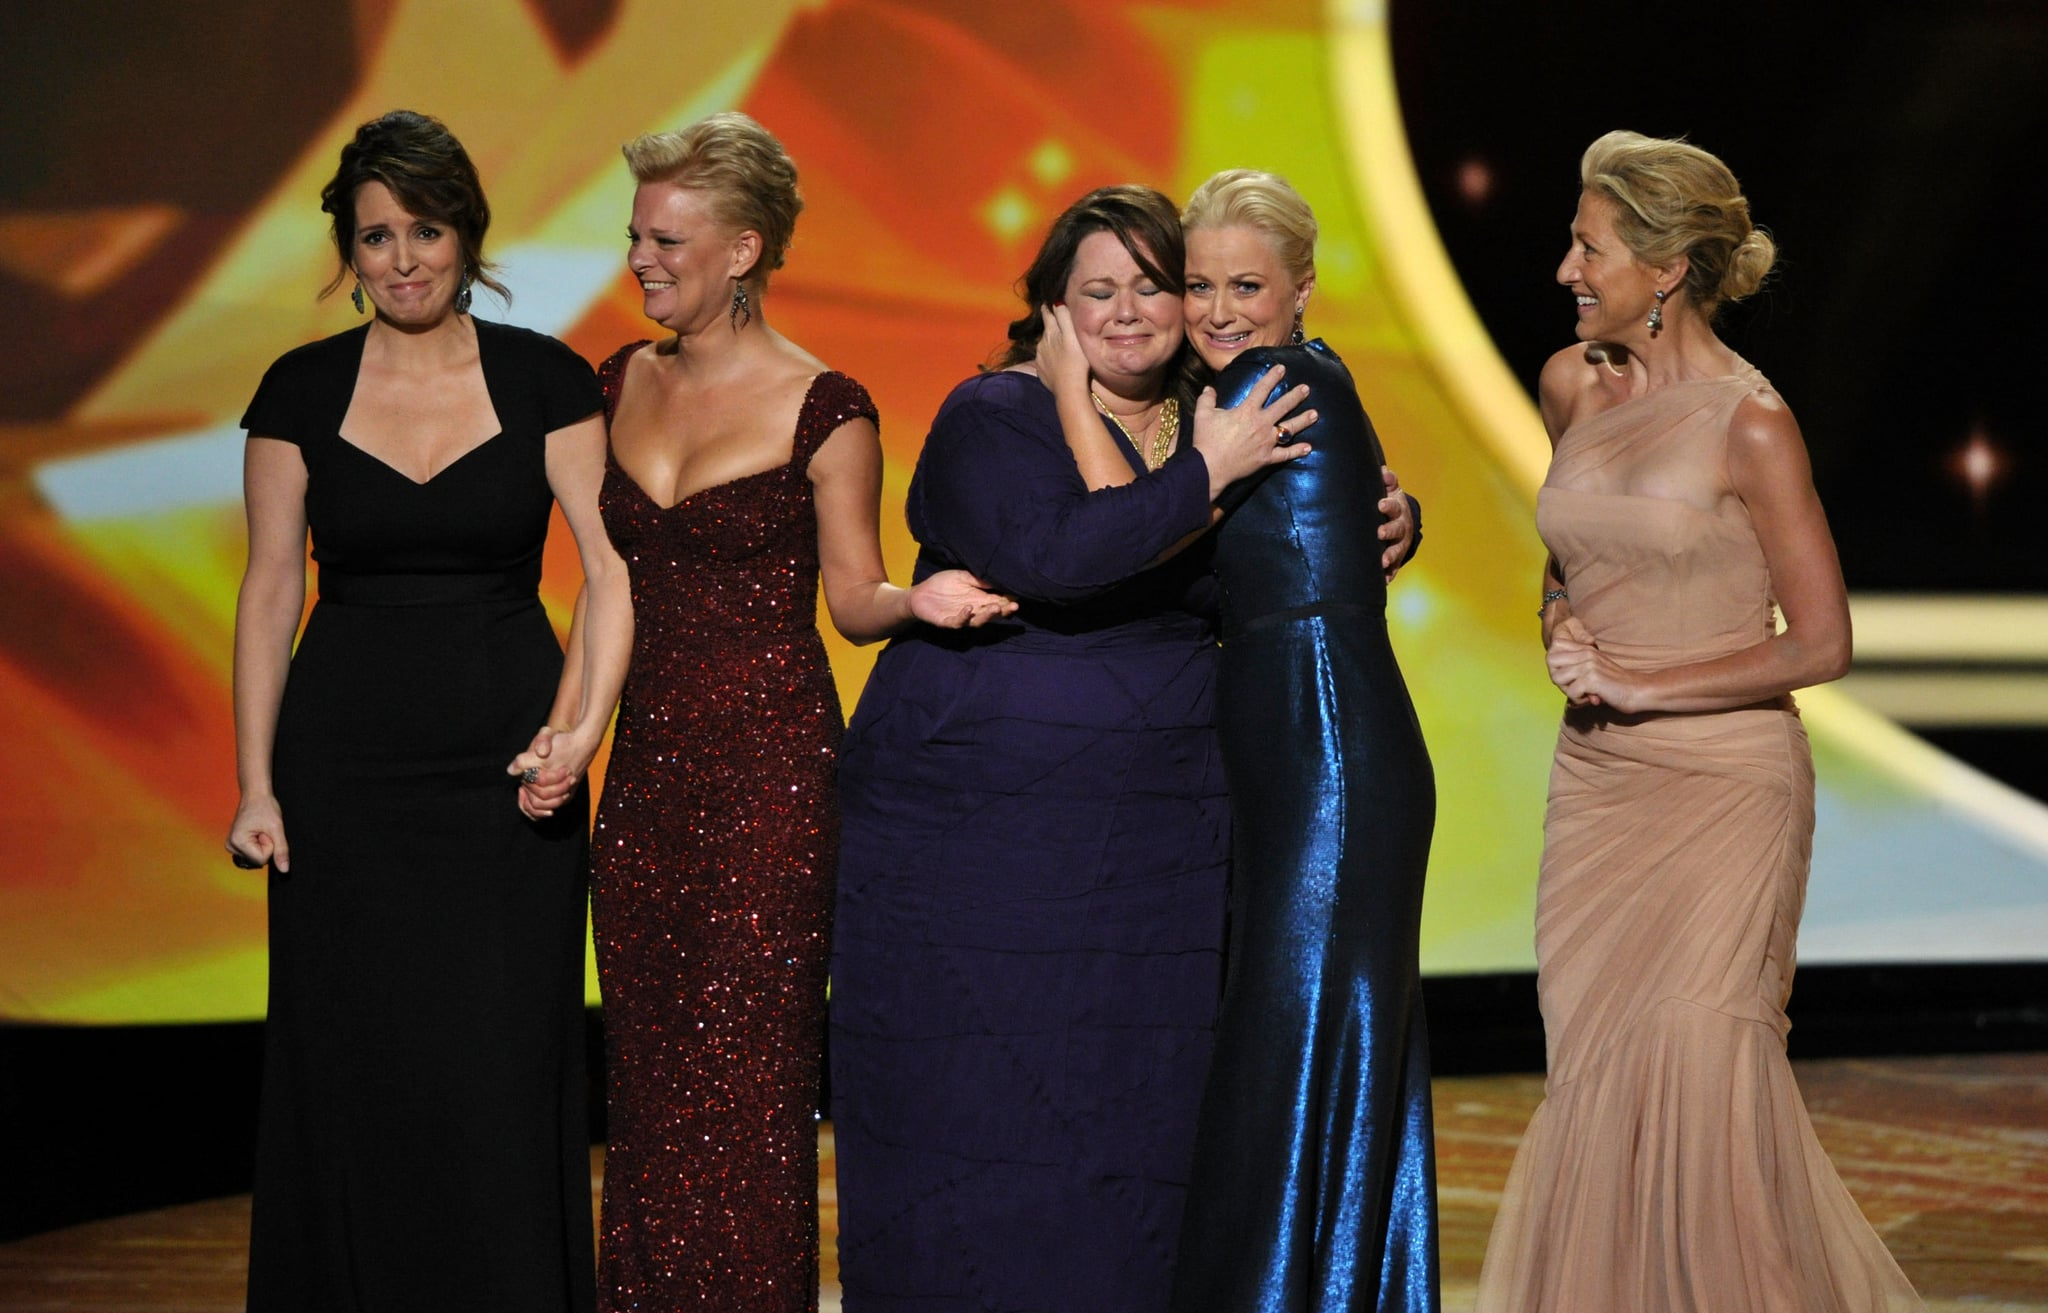 Best actress in a comedy nominees Tina Fey, Martha Plimpton, Melissa McCarthy, Amy Poehler, and Edie Falco took the stage together in 2011.